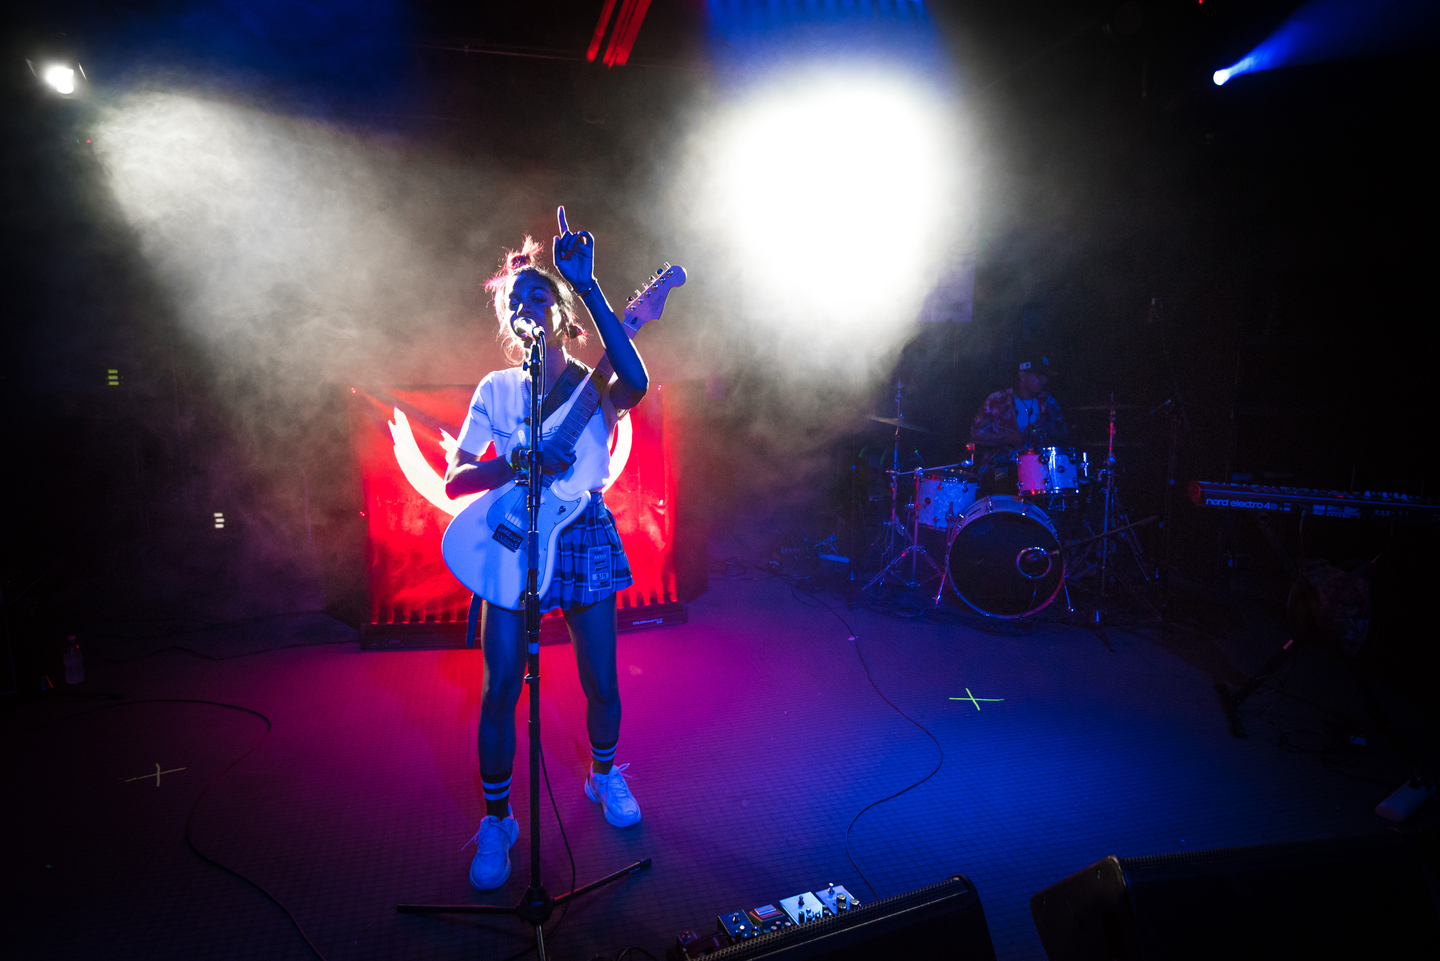 BAYLI at Empire Garage, presented by Treble – Photo by Christopher Bouie